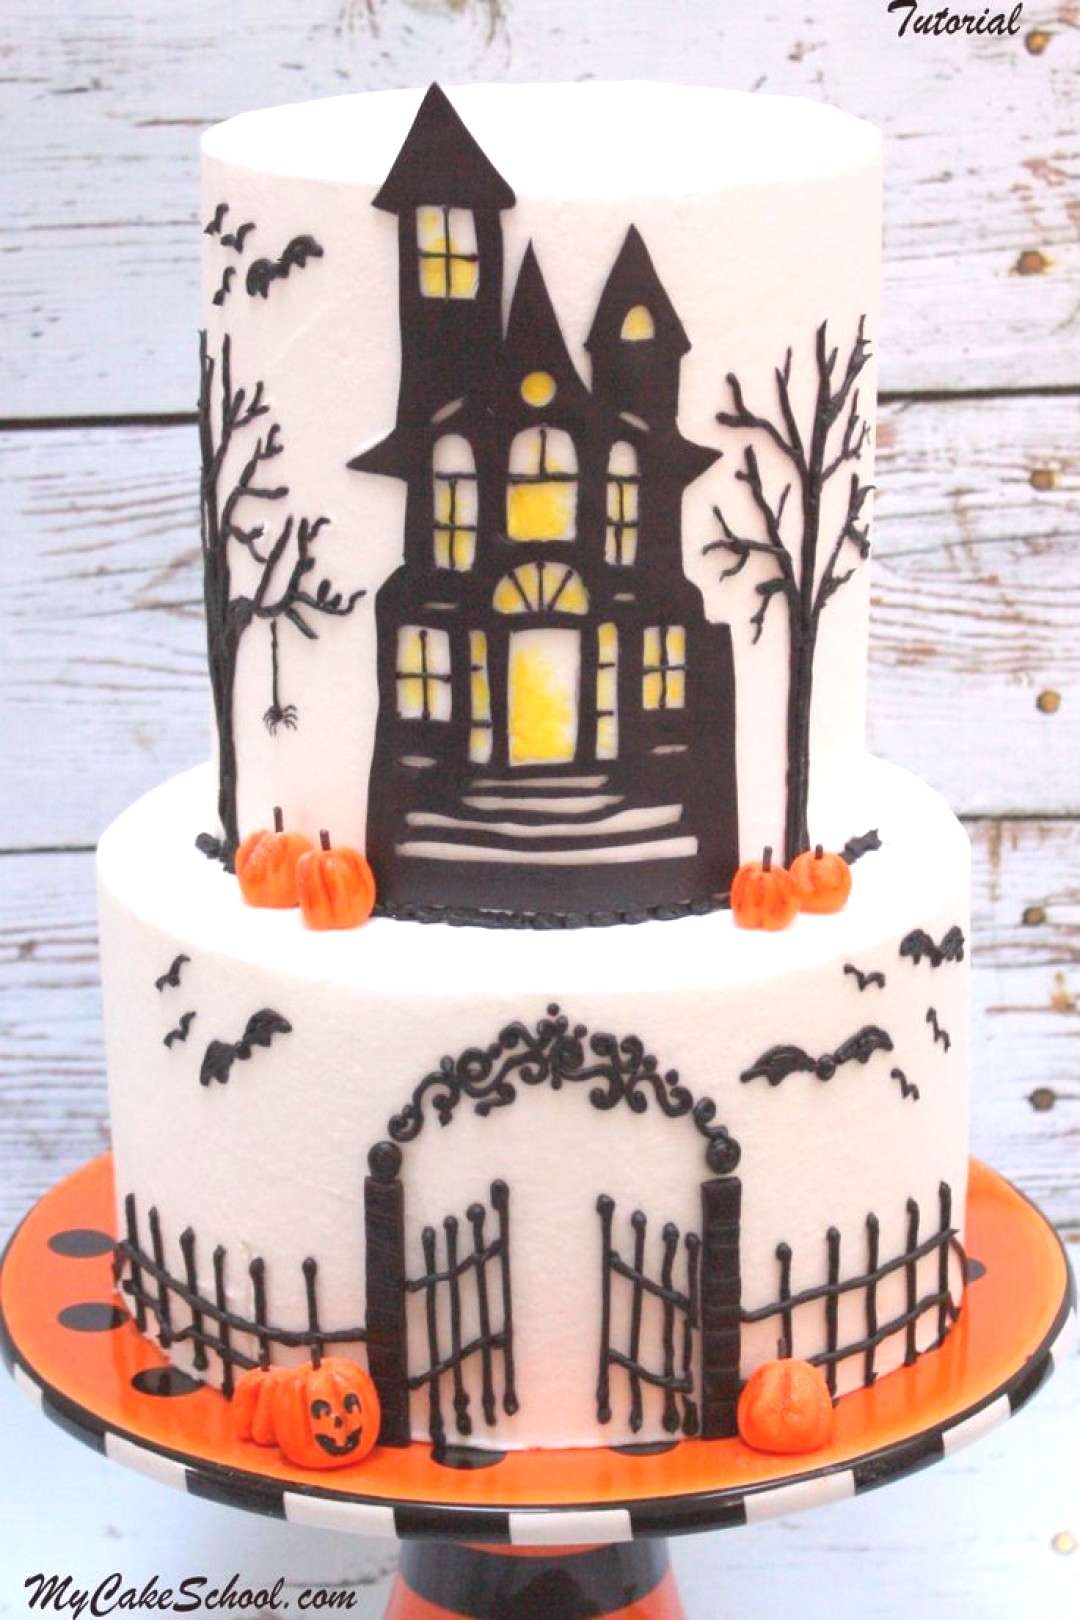 In this cake decorating video tutorial from , learn to create a festive Haunted House Halloween cak